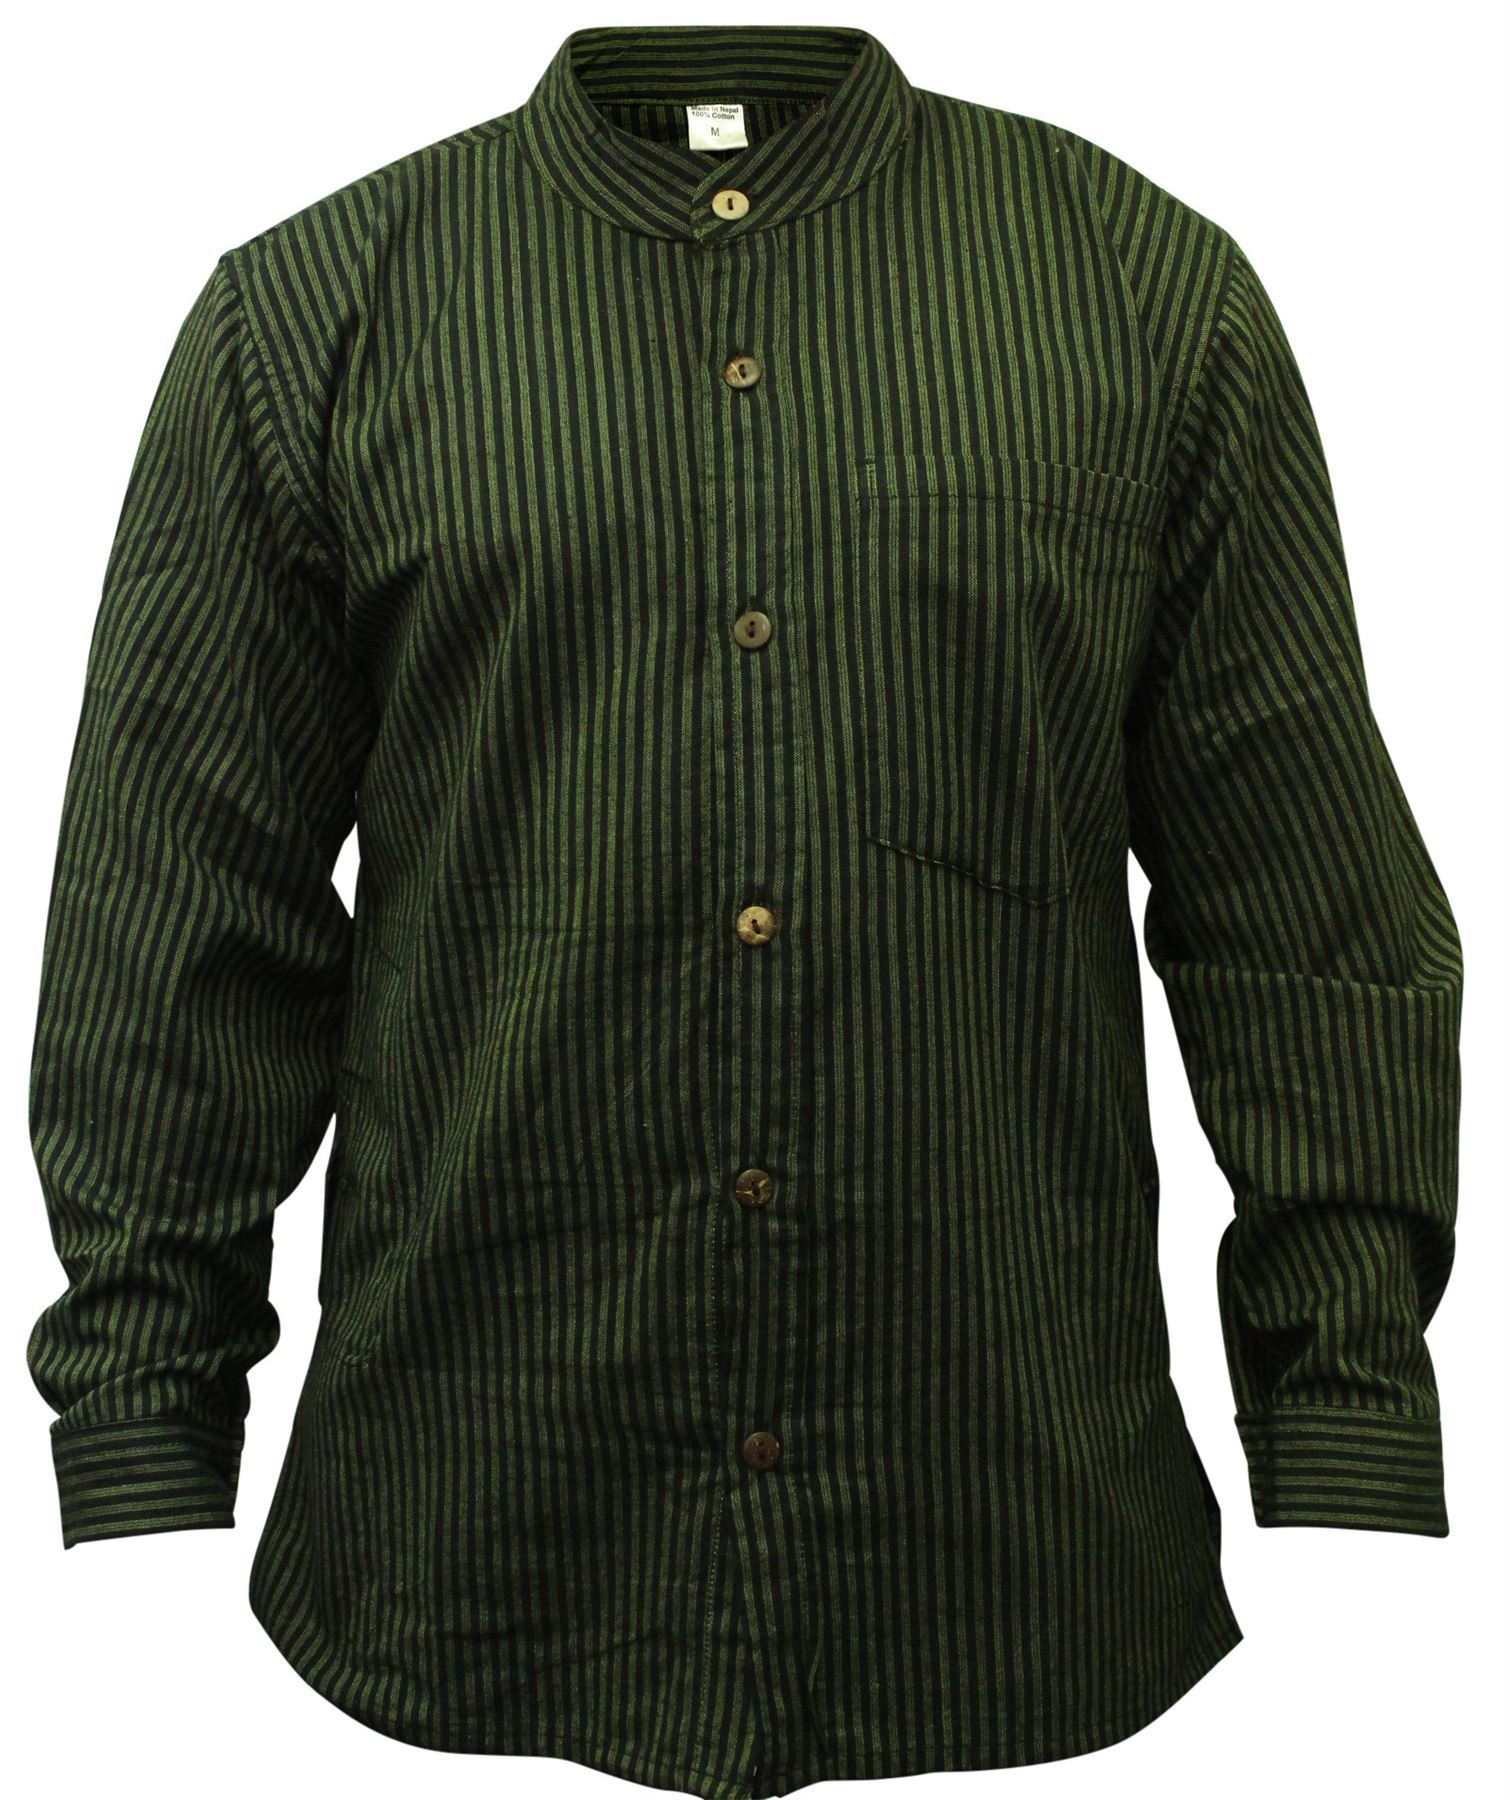 Shop for and buy mens collarless shirts online at Macy's. Find mens collarless shirts at Macy's.